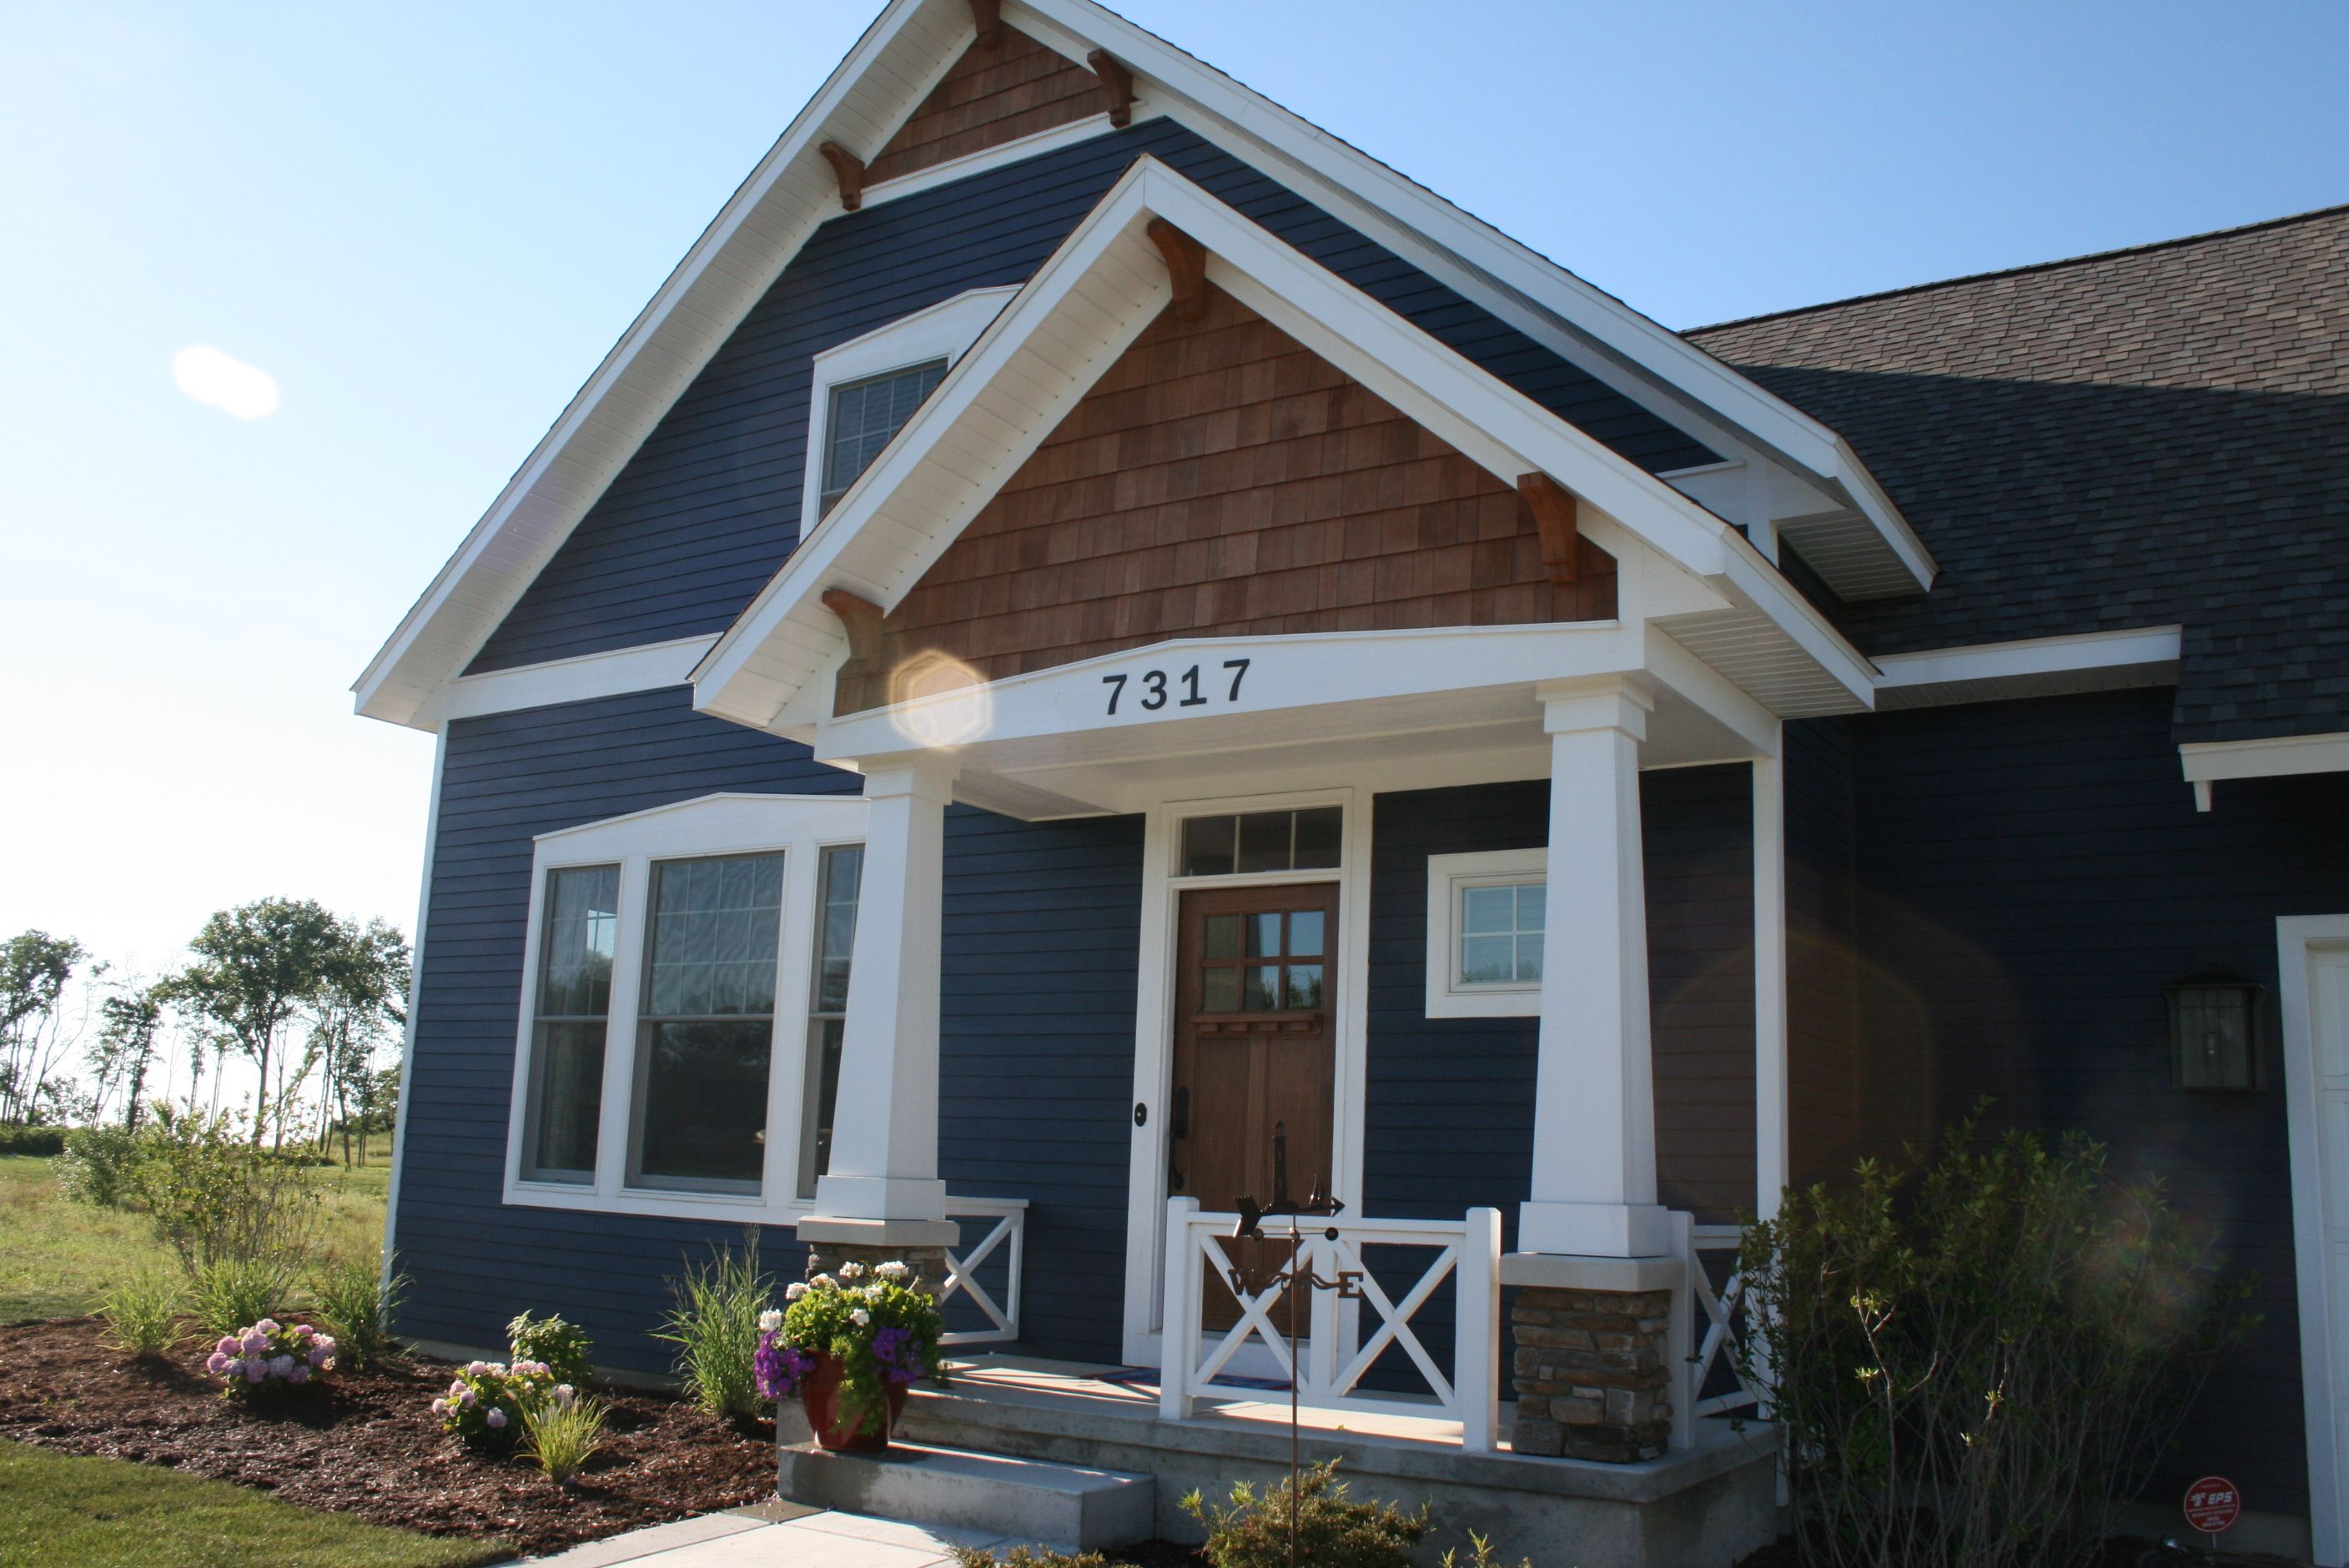 Craftsman exterior house paint ideas - Find This Pin And More On Dream Home Exterior Craftsman Style Homes Interior Paint Colors